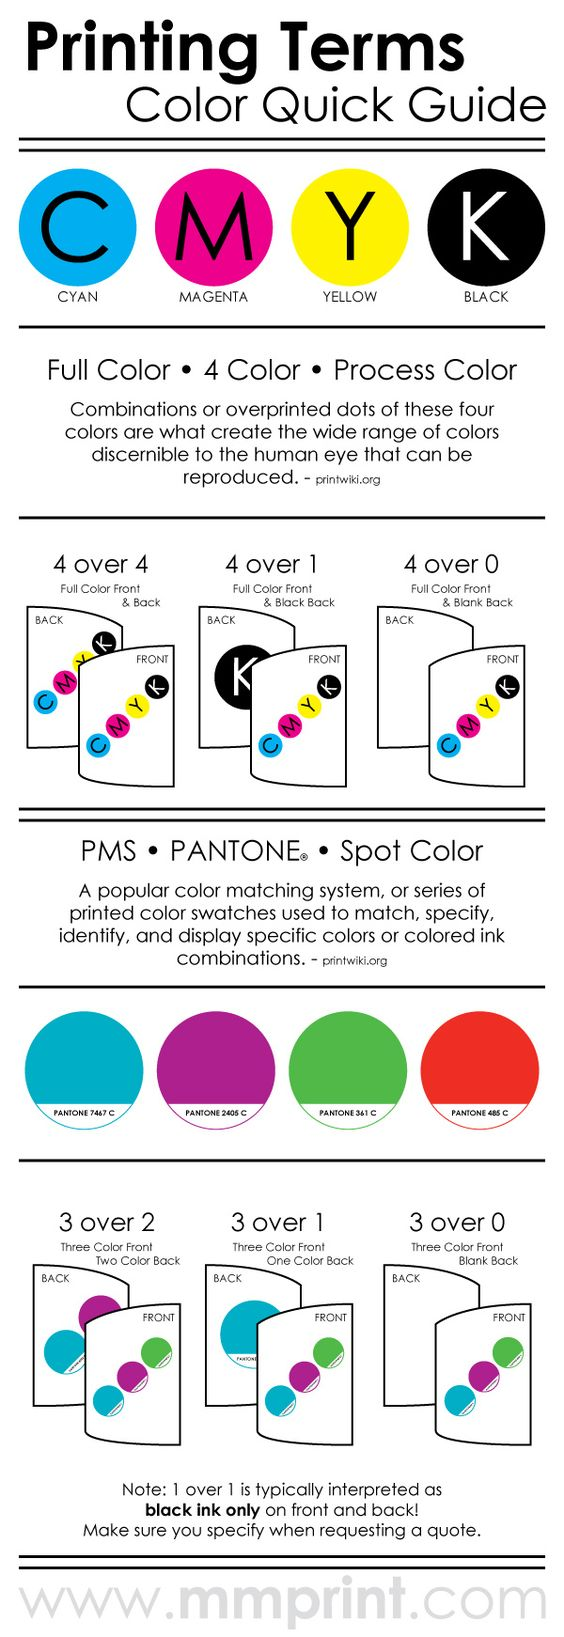 Printing Terms Infographic – Color Quick Guide - M&M Group